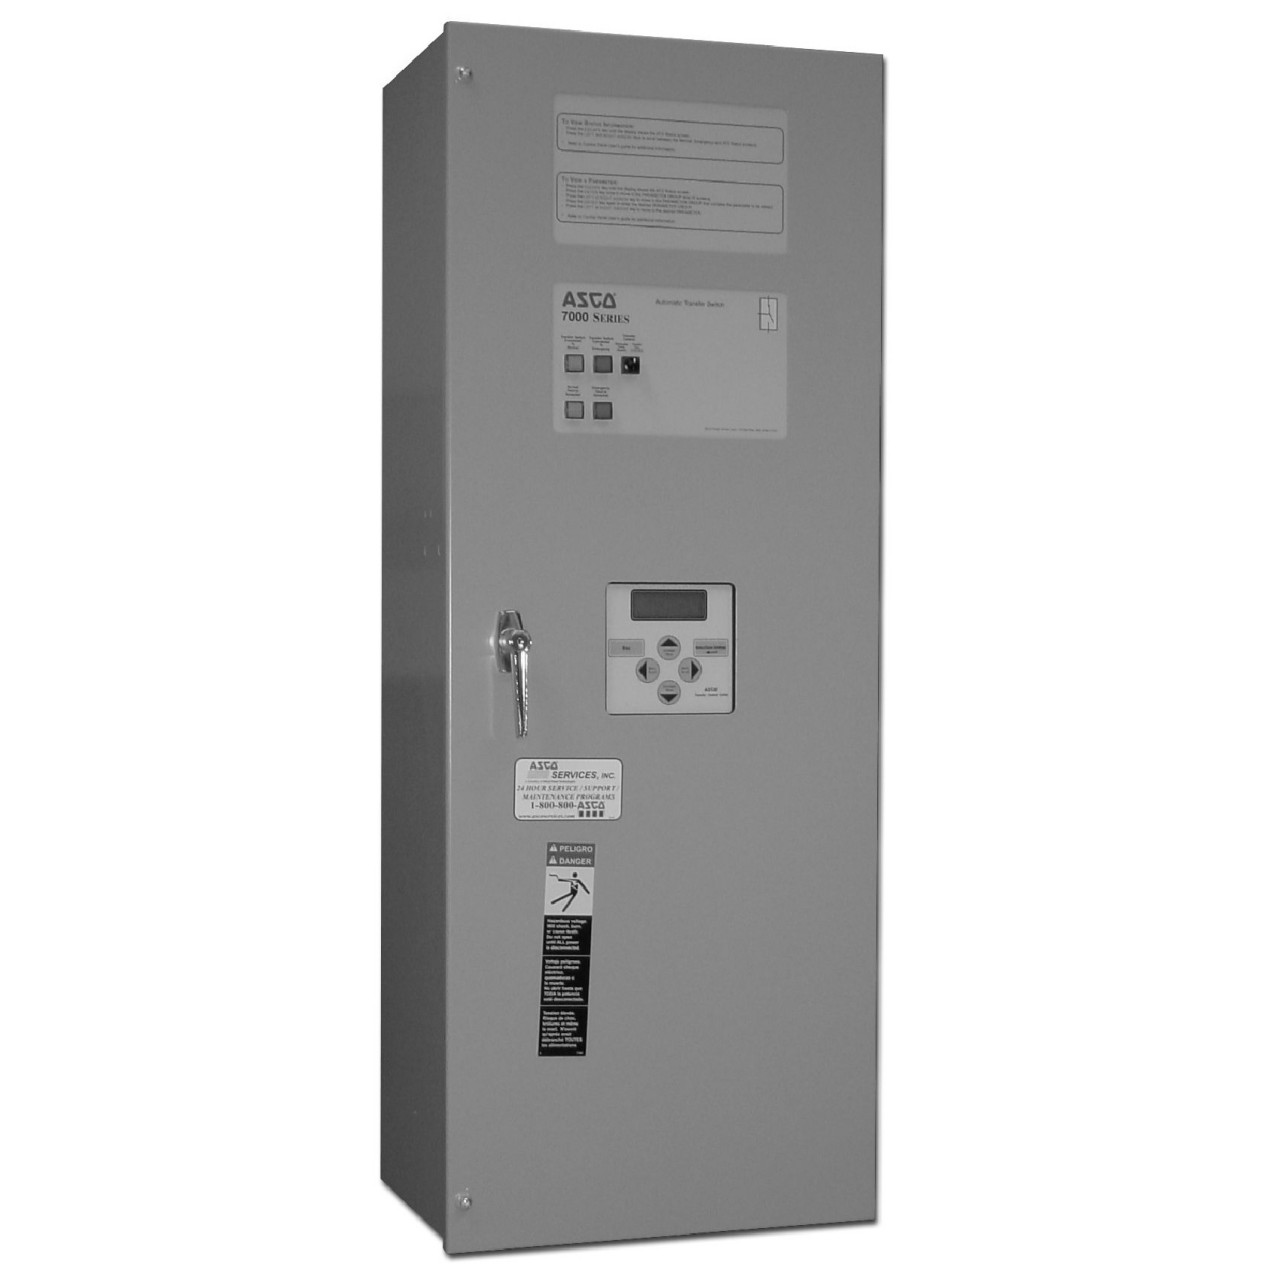 Asco 7000 Manual Transfer Switch (1Ph, 100A)